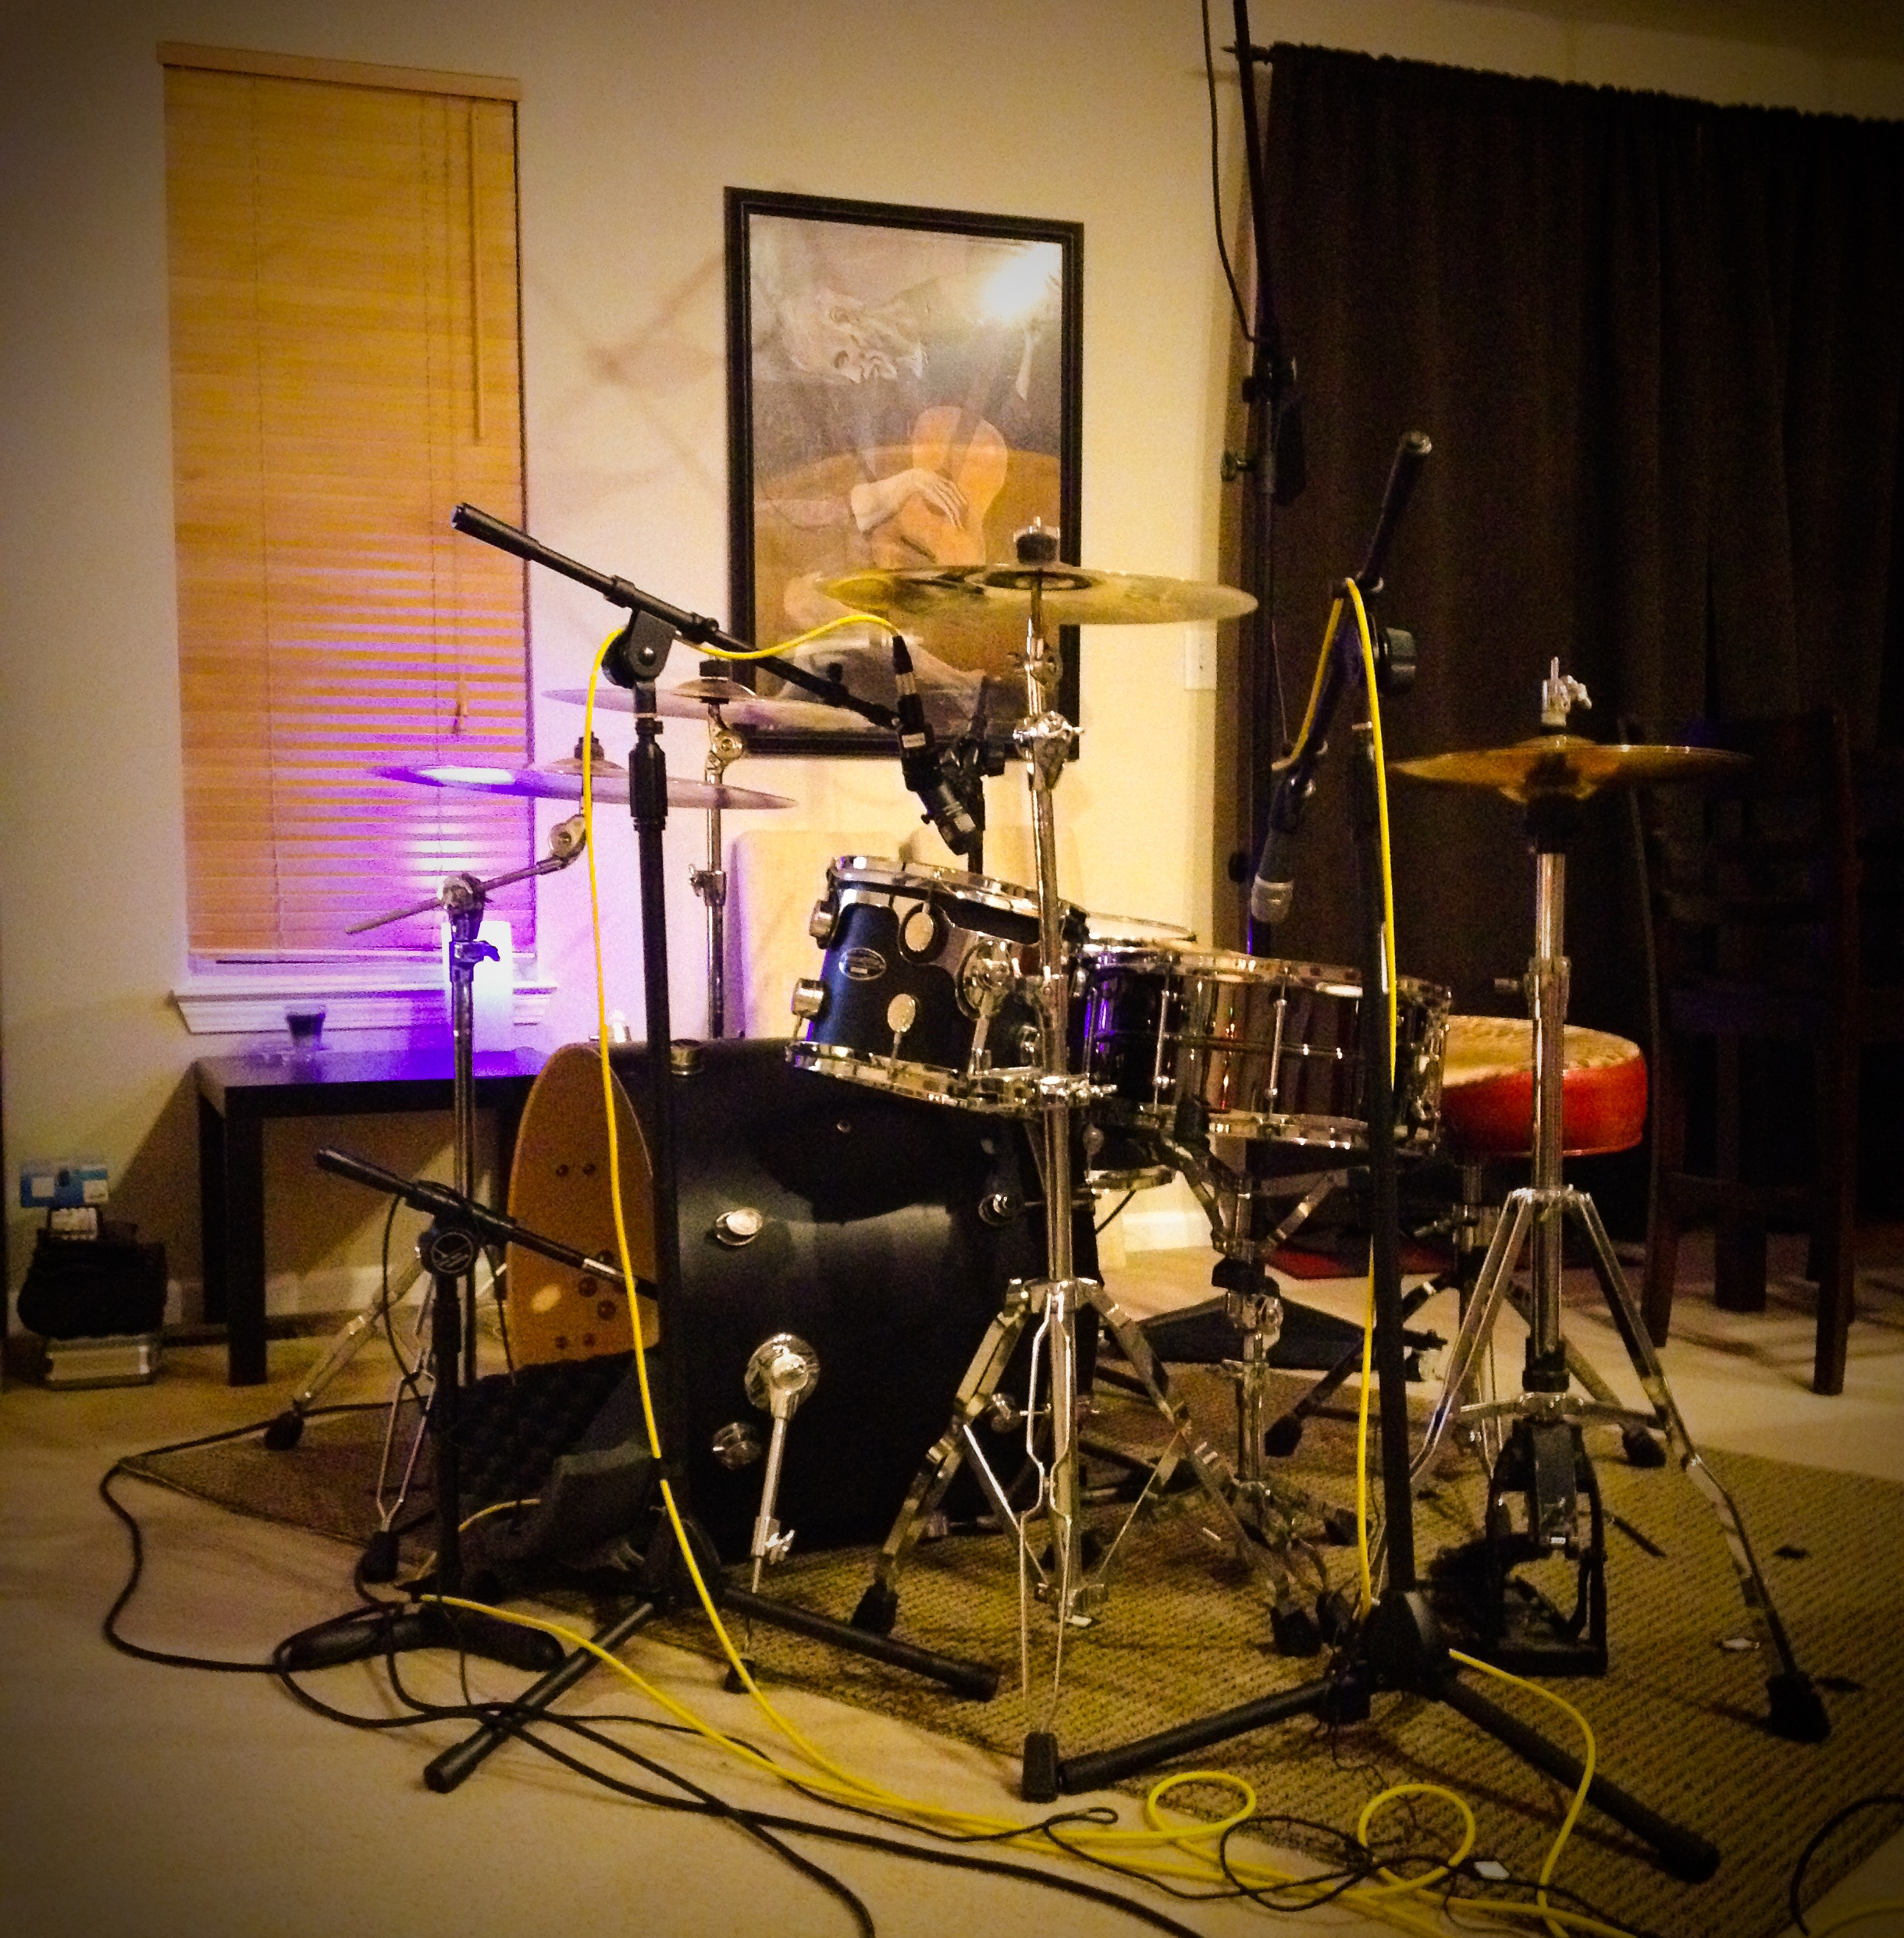 Jordan's kit, tuned and mic'd